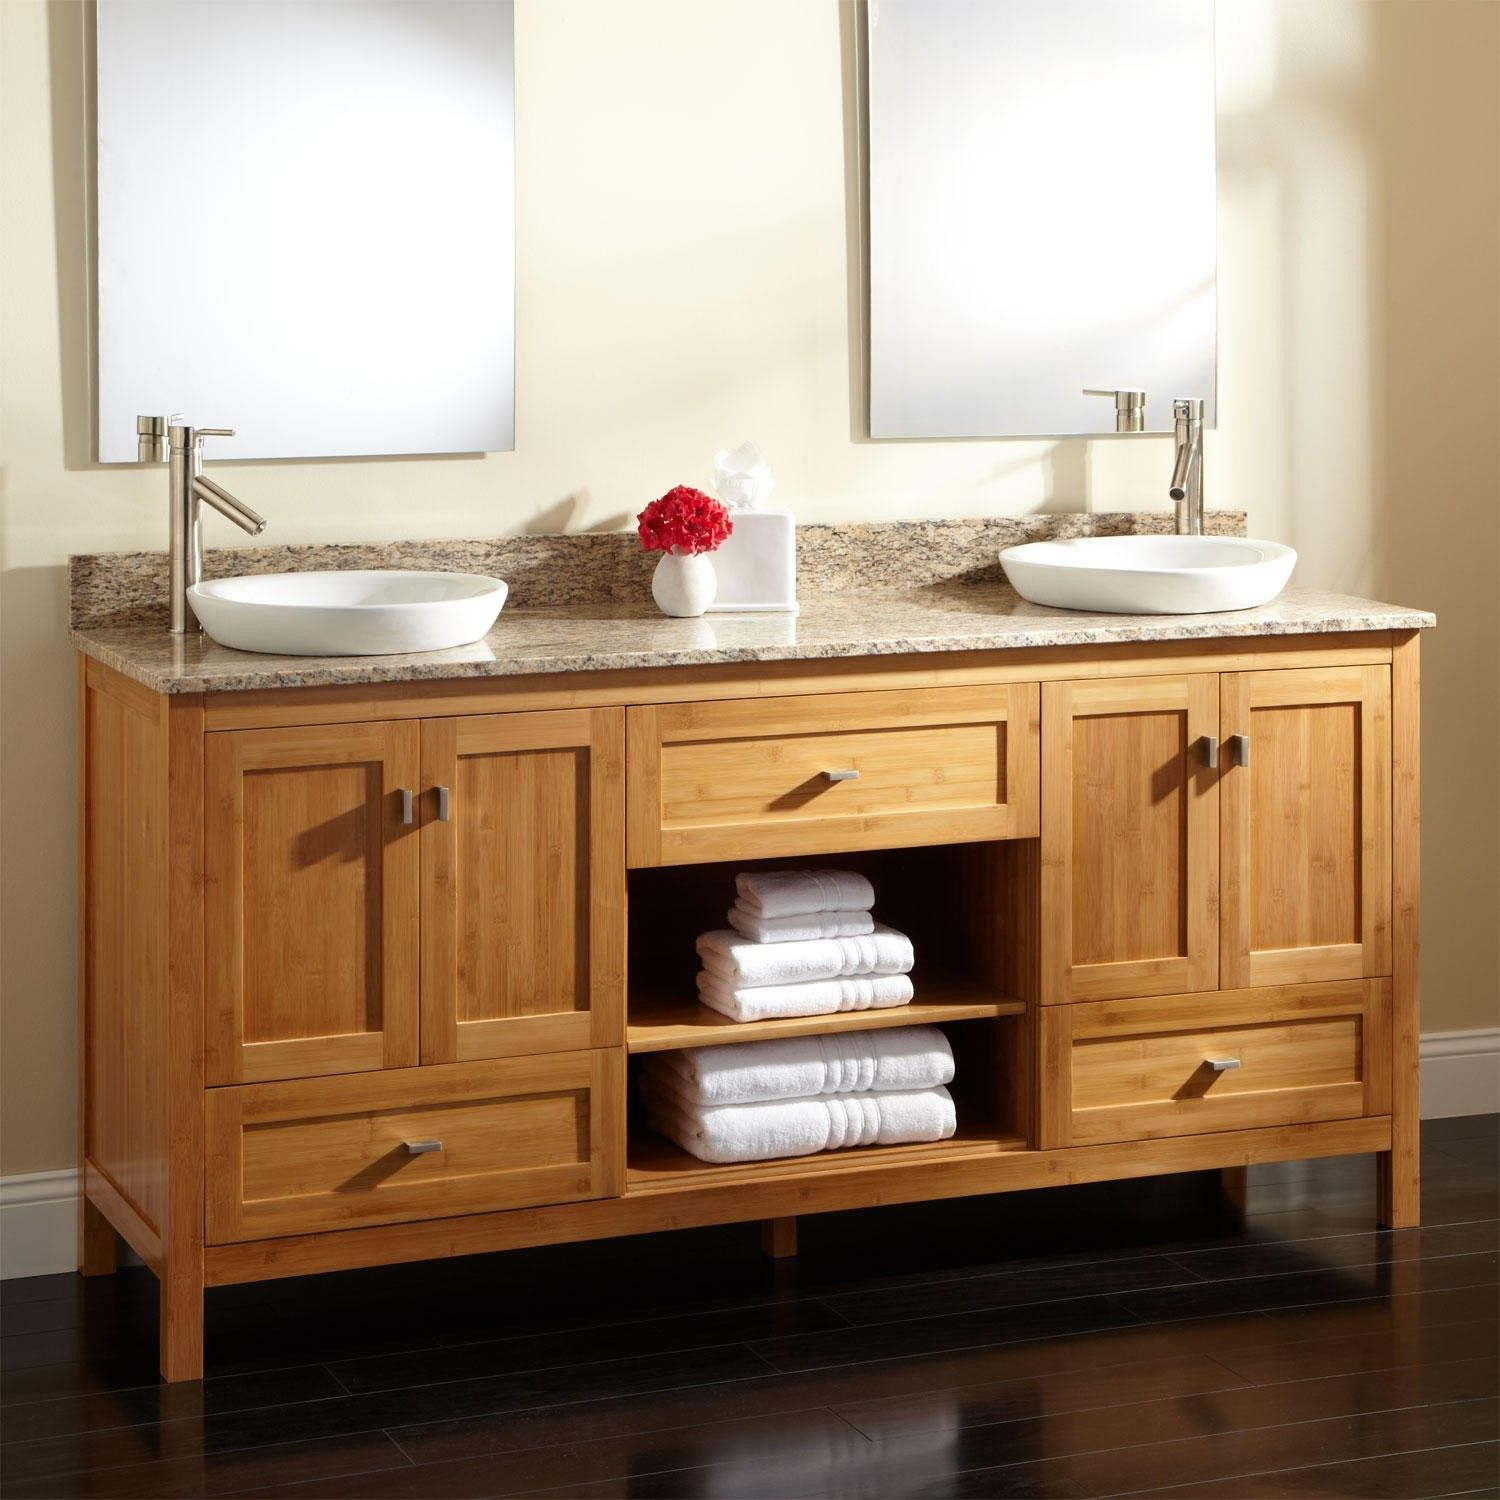 Exquisite Bathroom Design Ideas Pushin Natural Brown Bamboo Vanity New Bamboo Bathroom Design Bathroom Ideas In 2019 Bathroom Sink Vanity Bathroom Vanity Cabinets Bathroom Vanity Storage